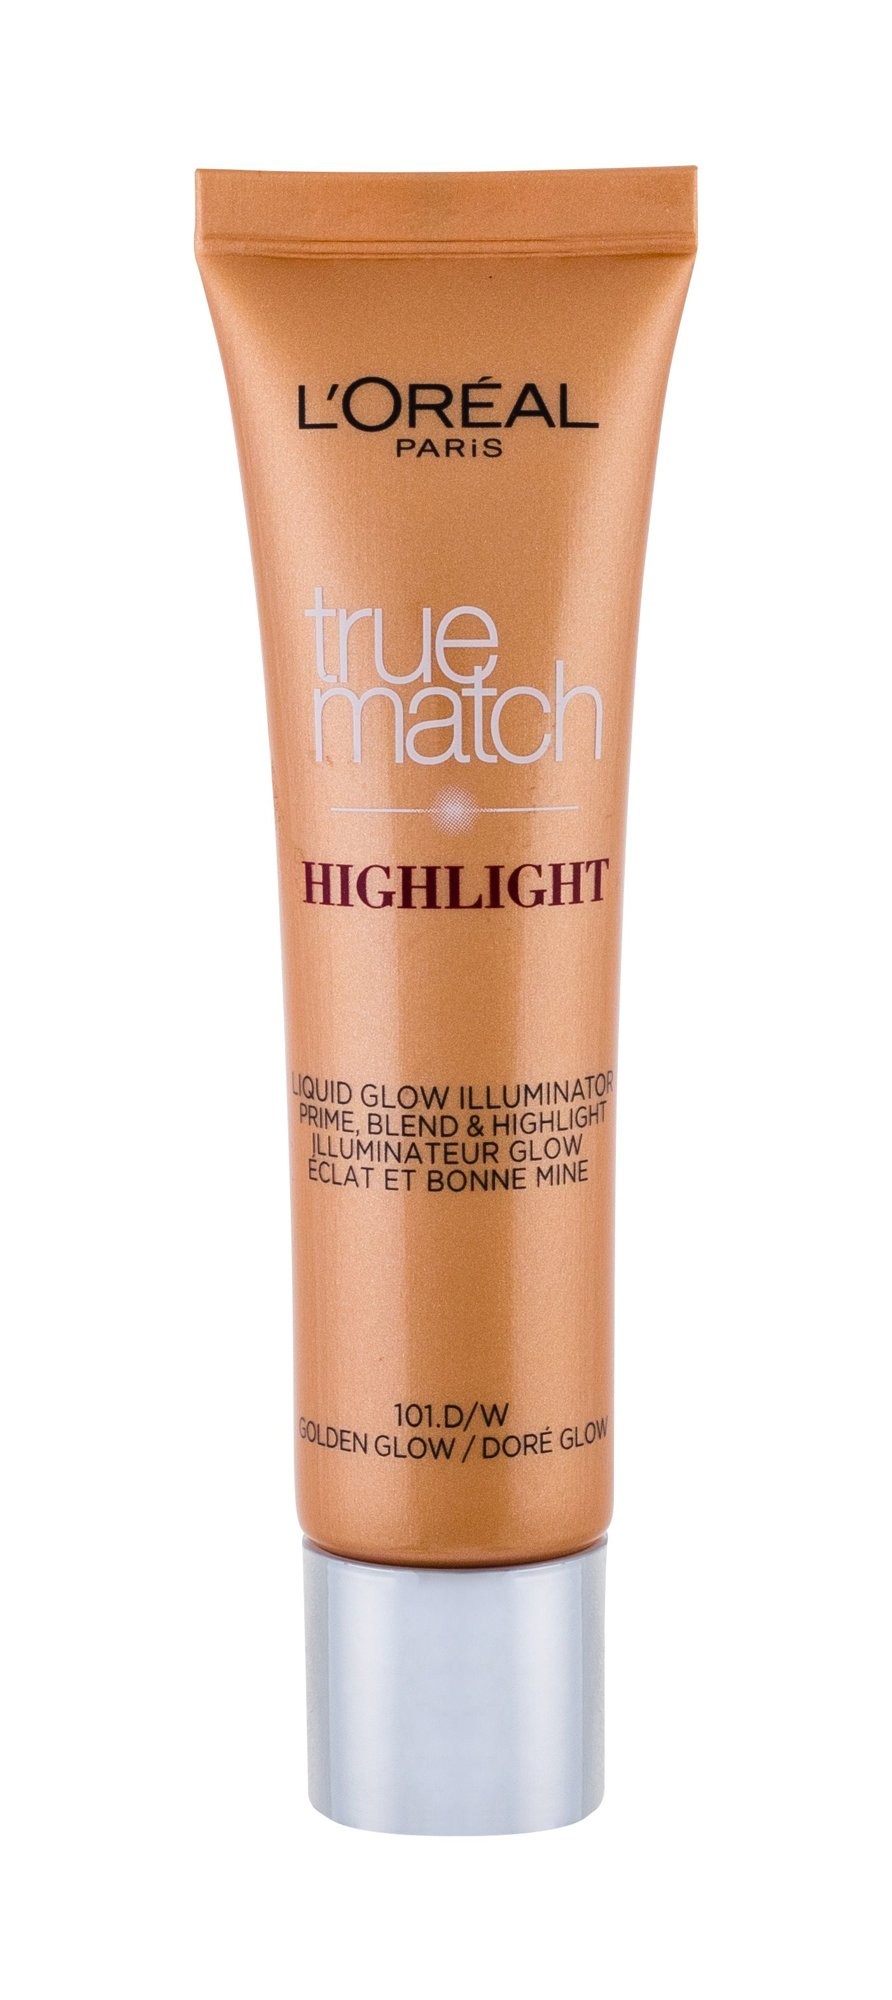 L´Oréal Paris True Match Brightener 30ml 101.D/W Golden Glow